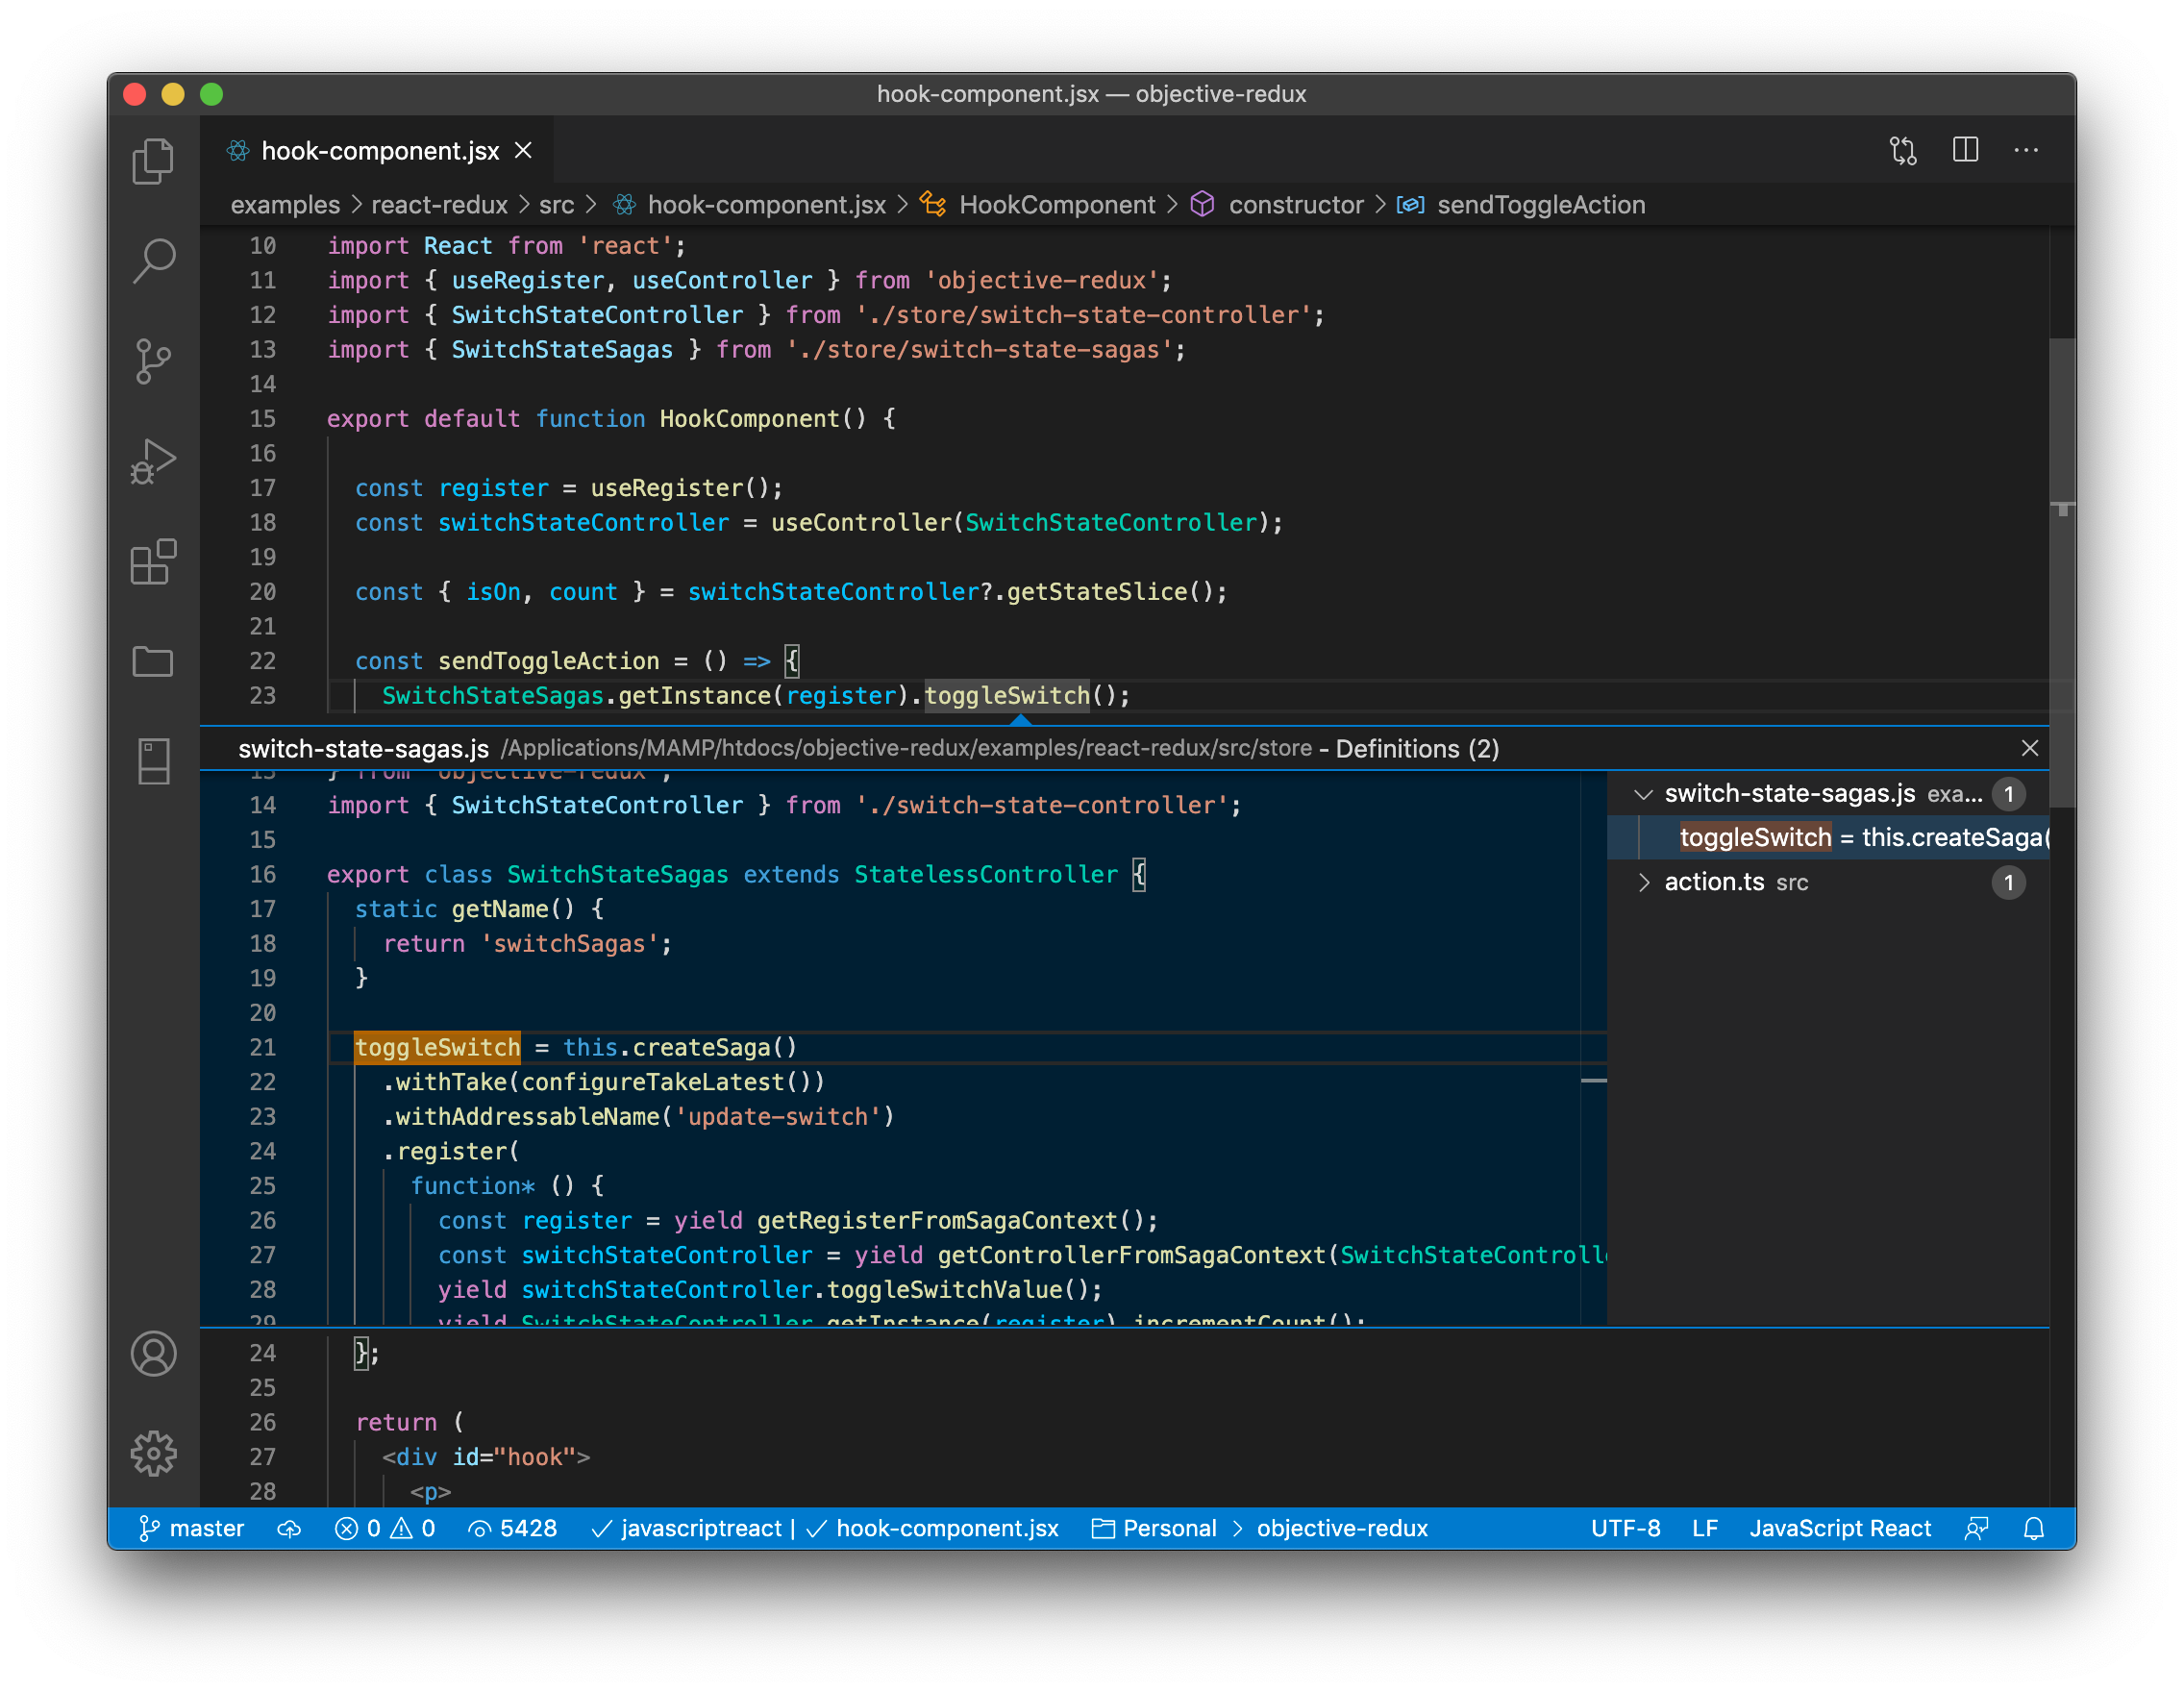 Debugging in VS Code